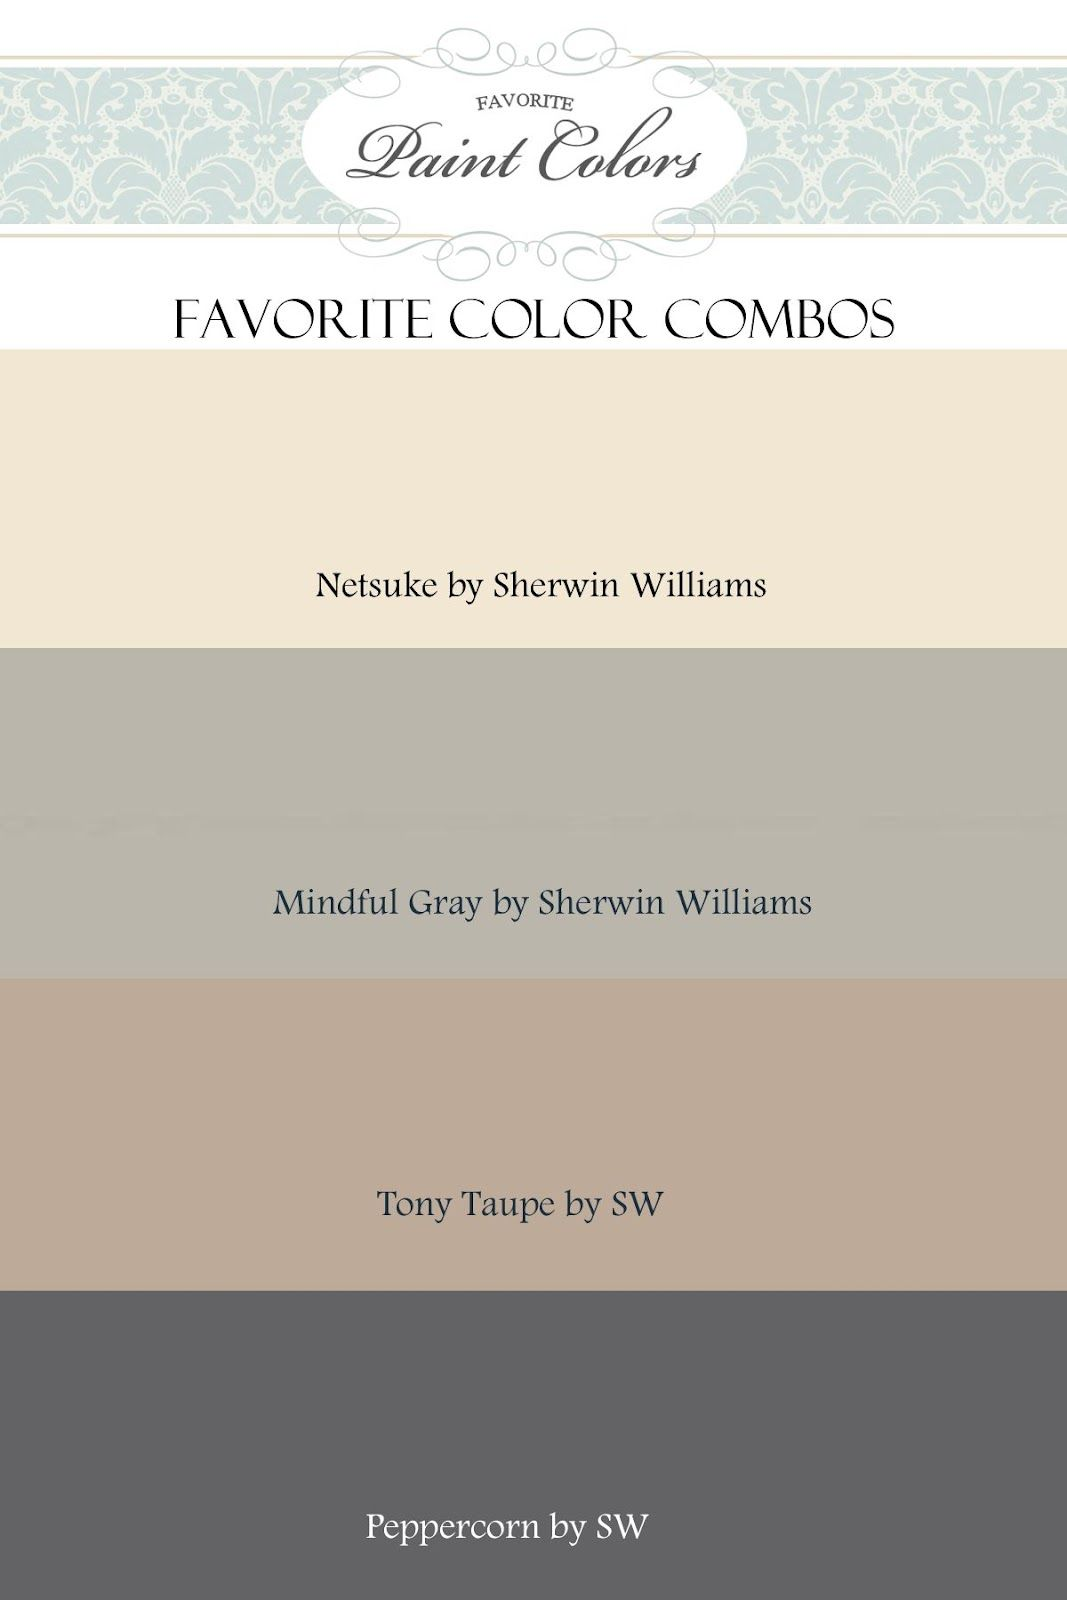 Sherwin williams popular greys - Gray And Beige Color Combination Netsuke Mindful Gray Tony Taupe And Peppercorn By Sherwin Williams